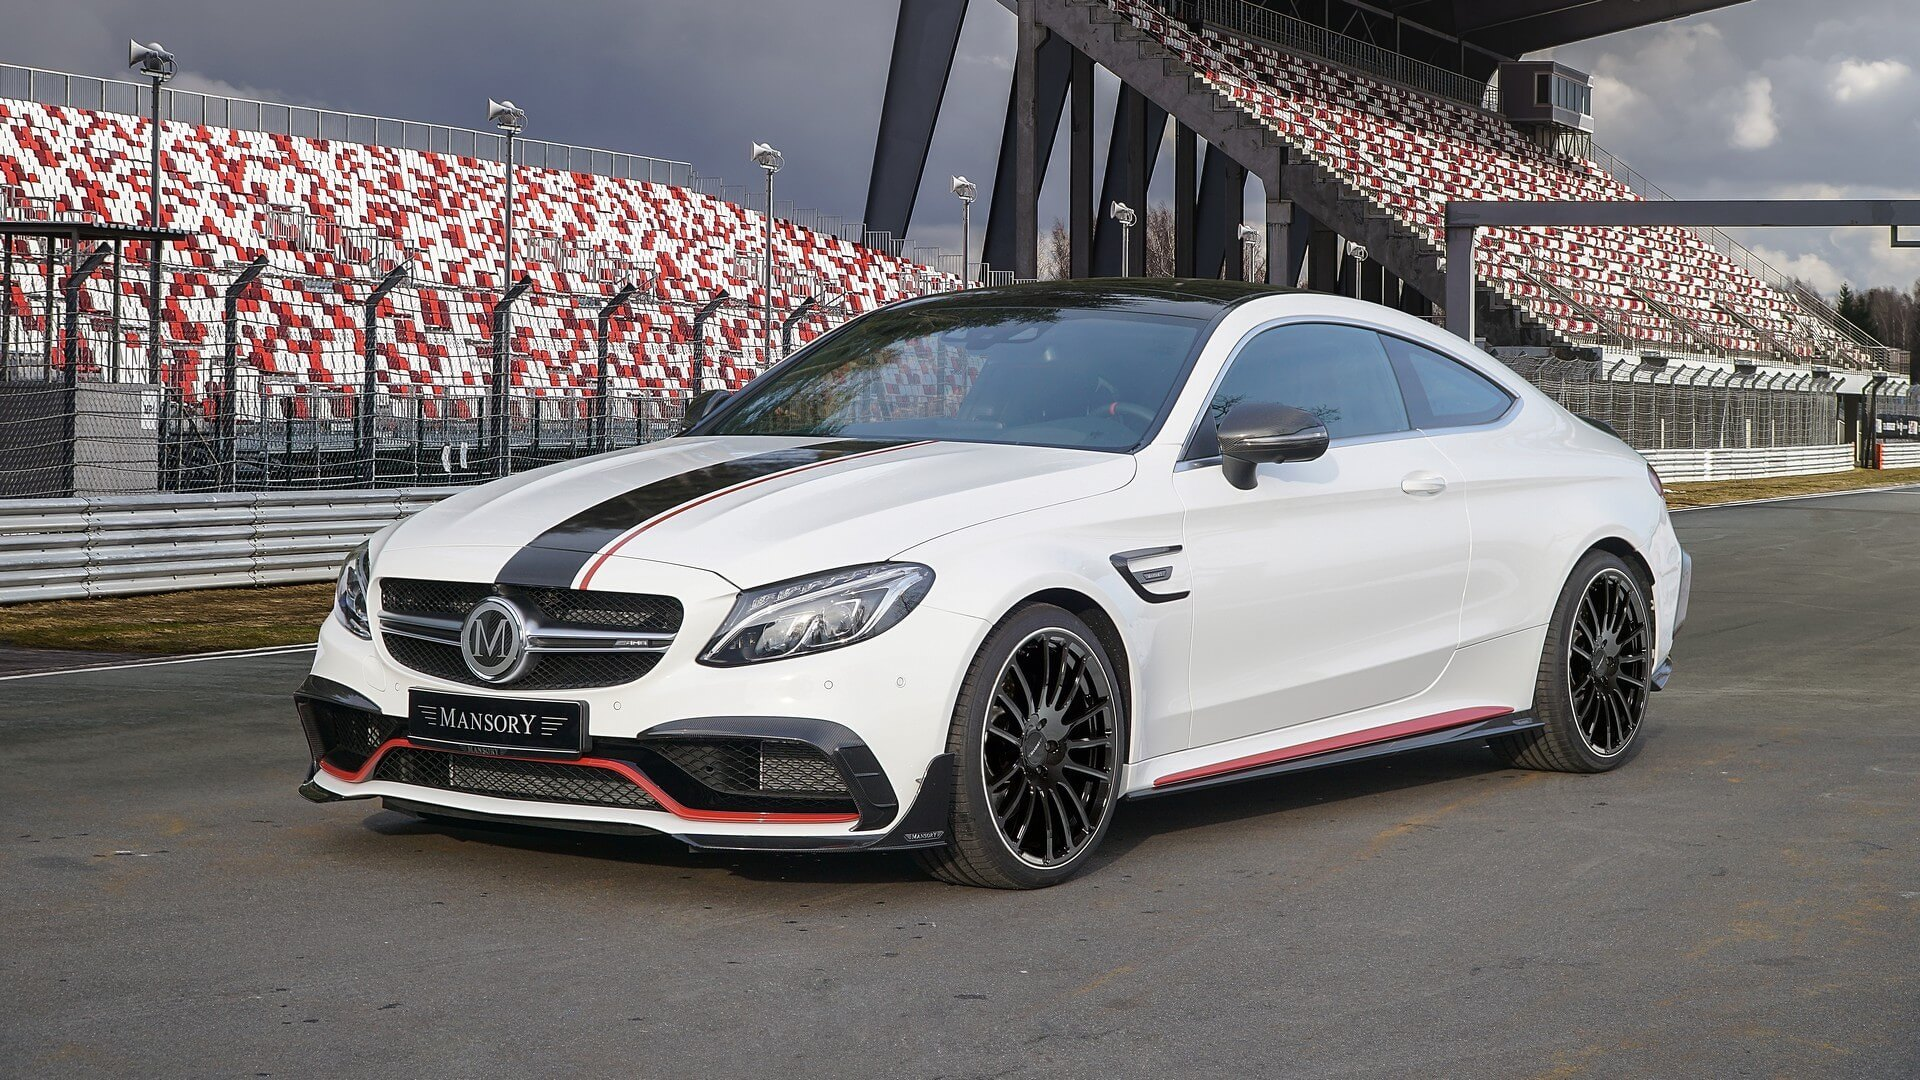 The famous car design atelier Mansory has released an extensive upgrade kit for the Mercedes-AMG C 63 coupe